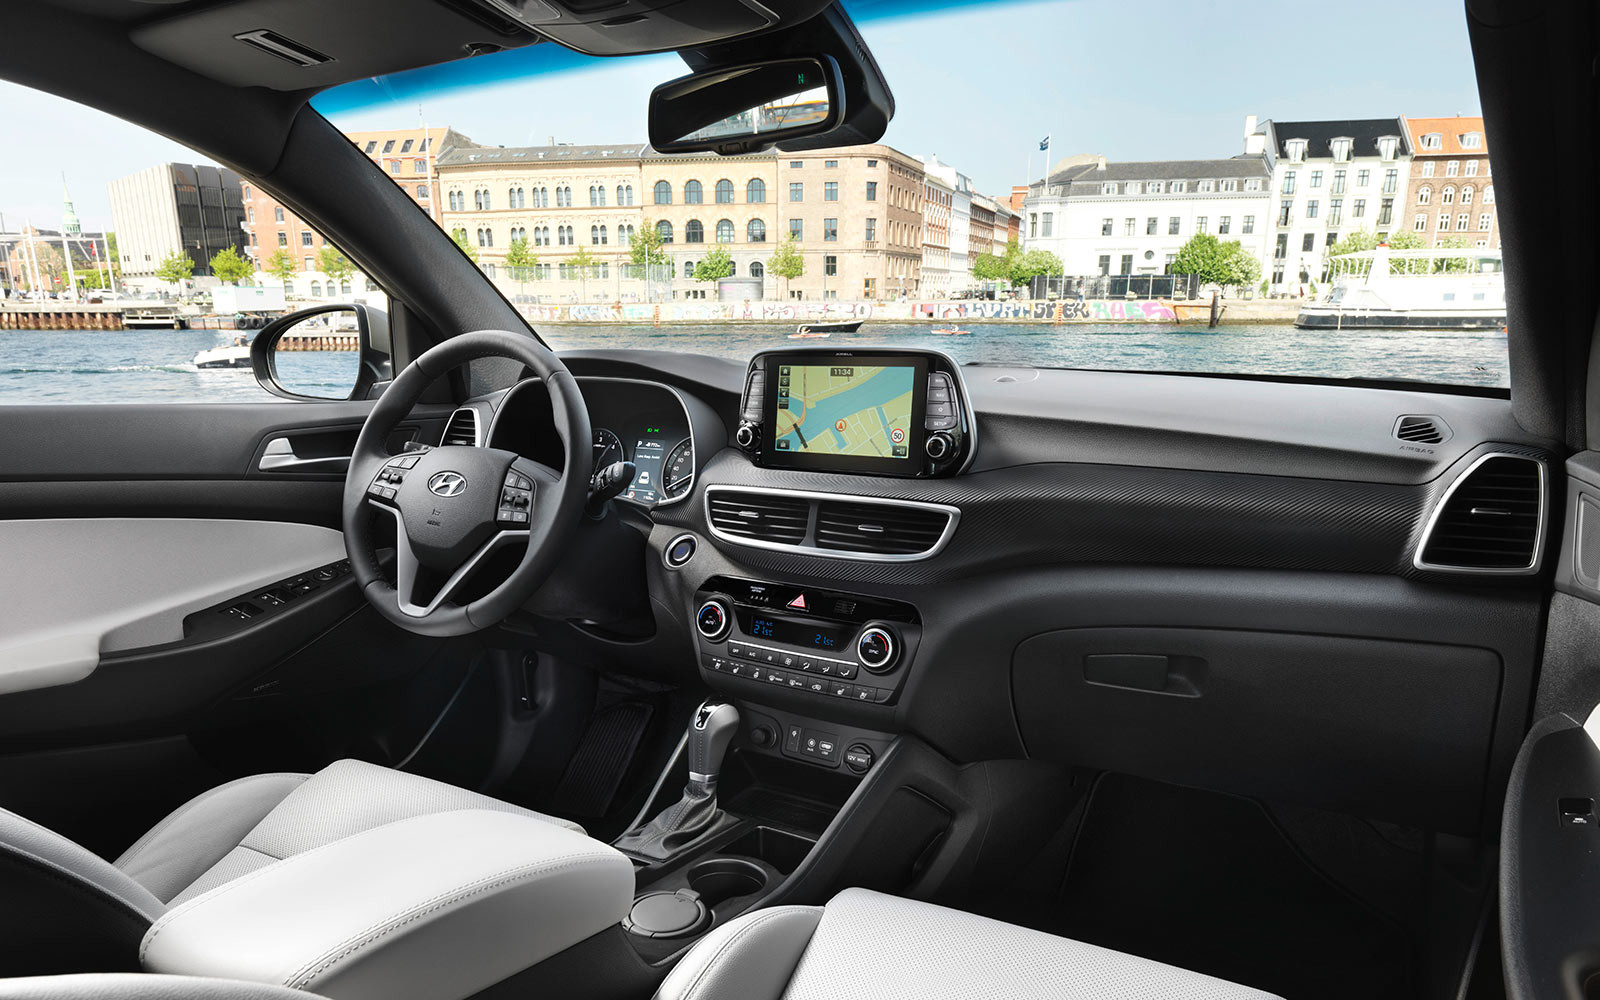 hyundai-tucson-july2018-47-interior-1610